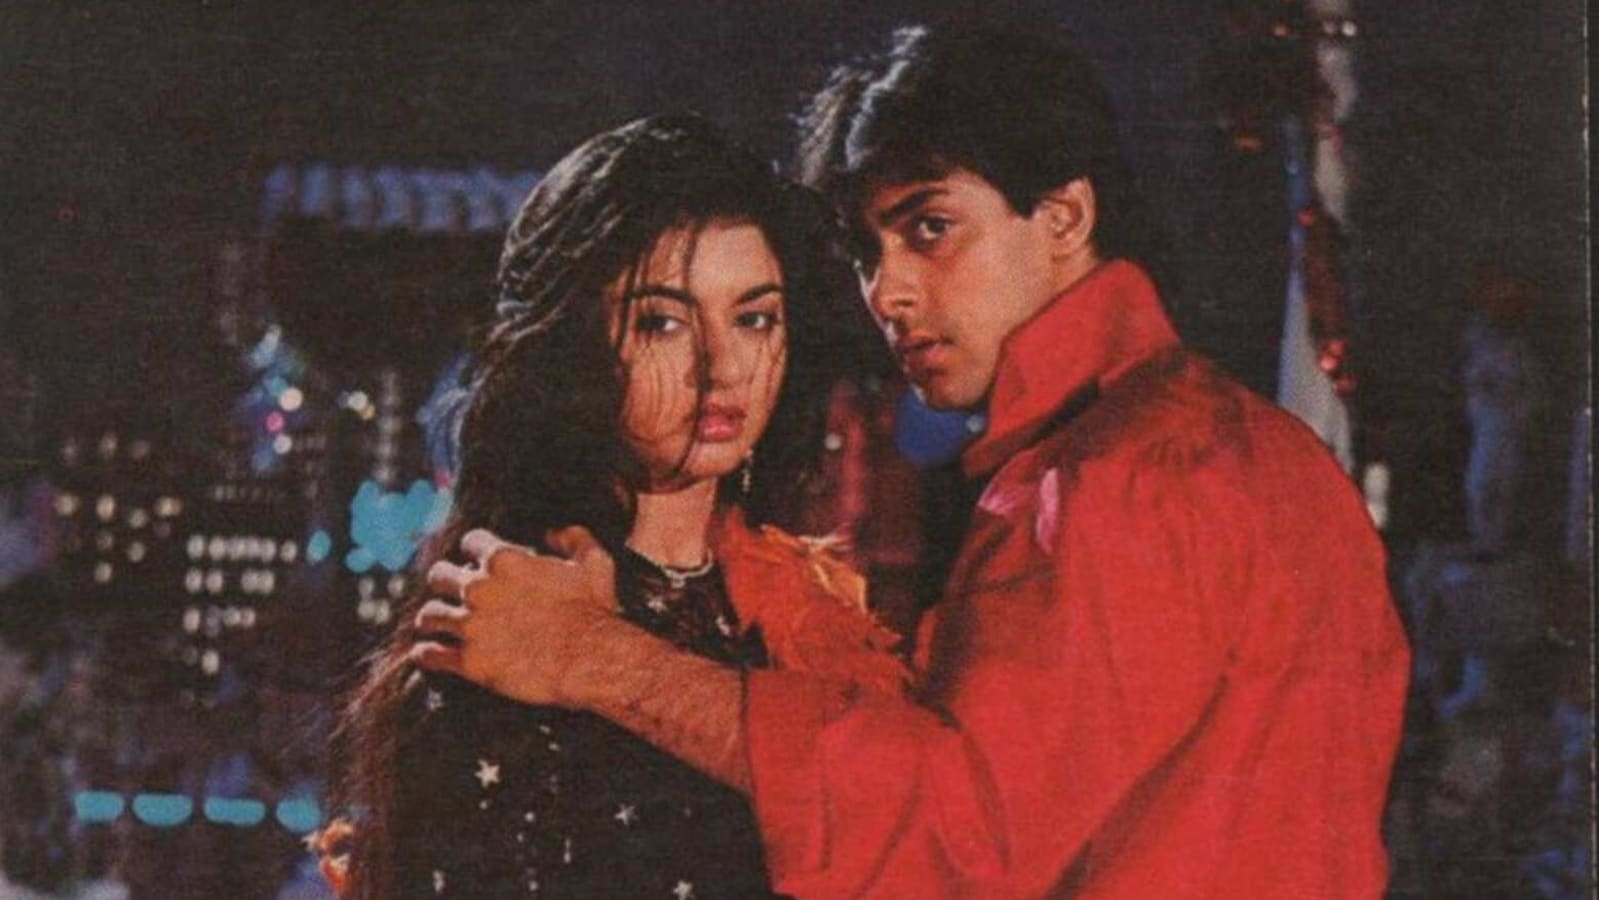 Happy birthday Bhagyashree: When Salman Khan refused to kiss her without her permission for 'hot' photos | Bollywood - Hindustan Times